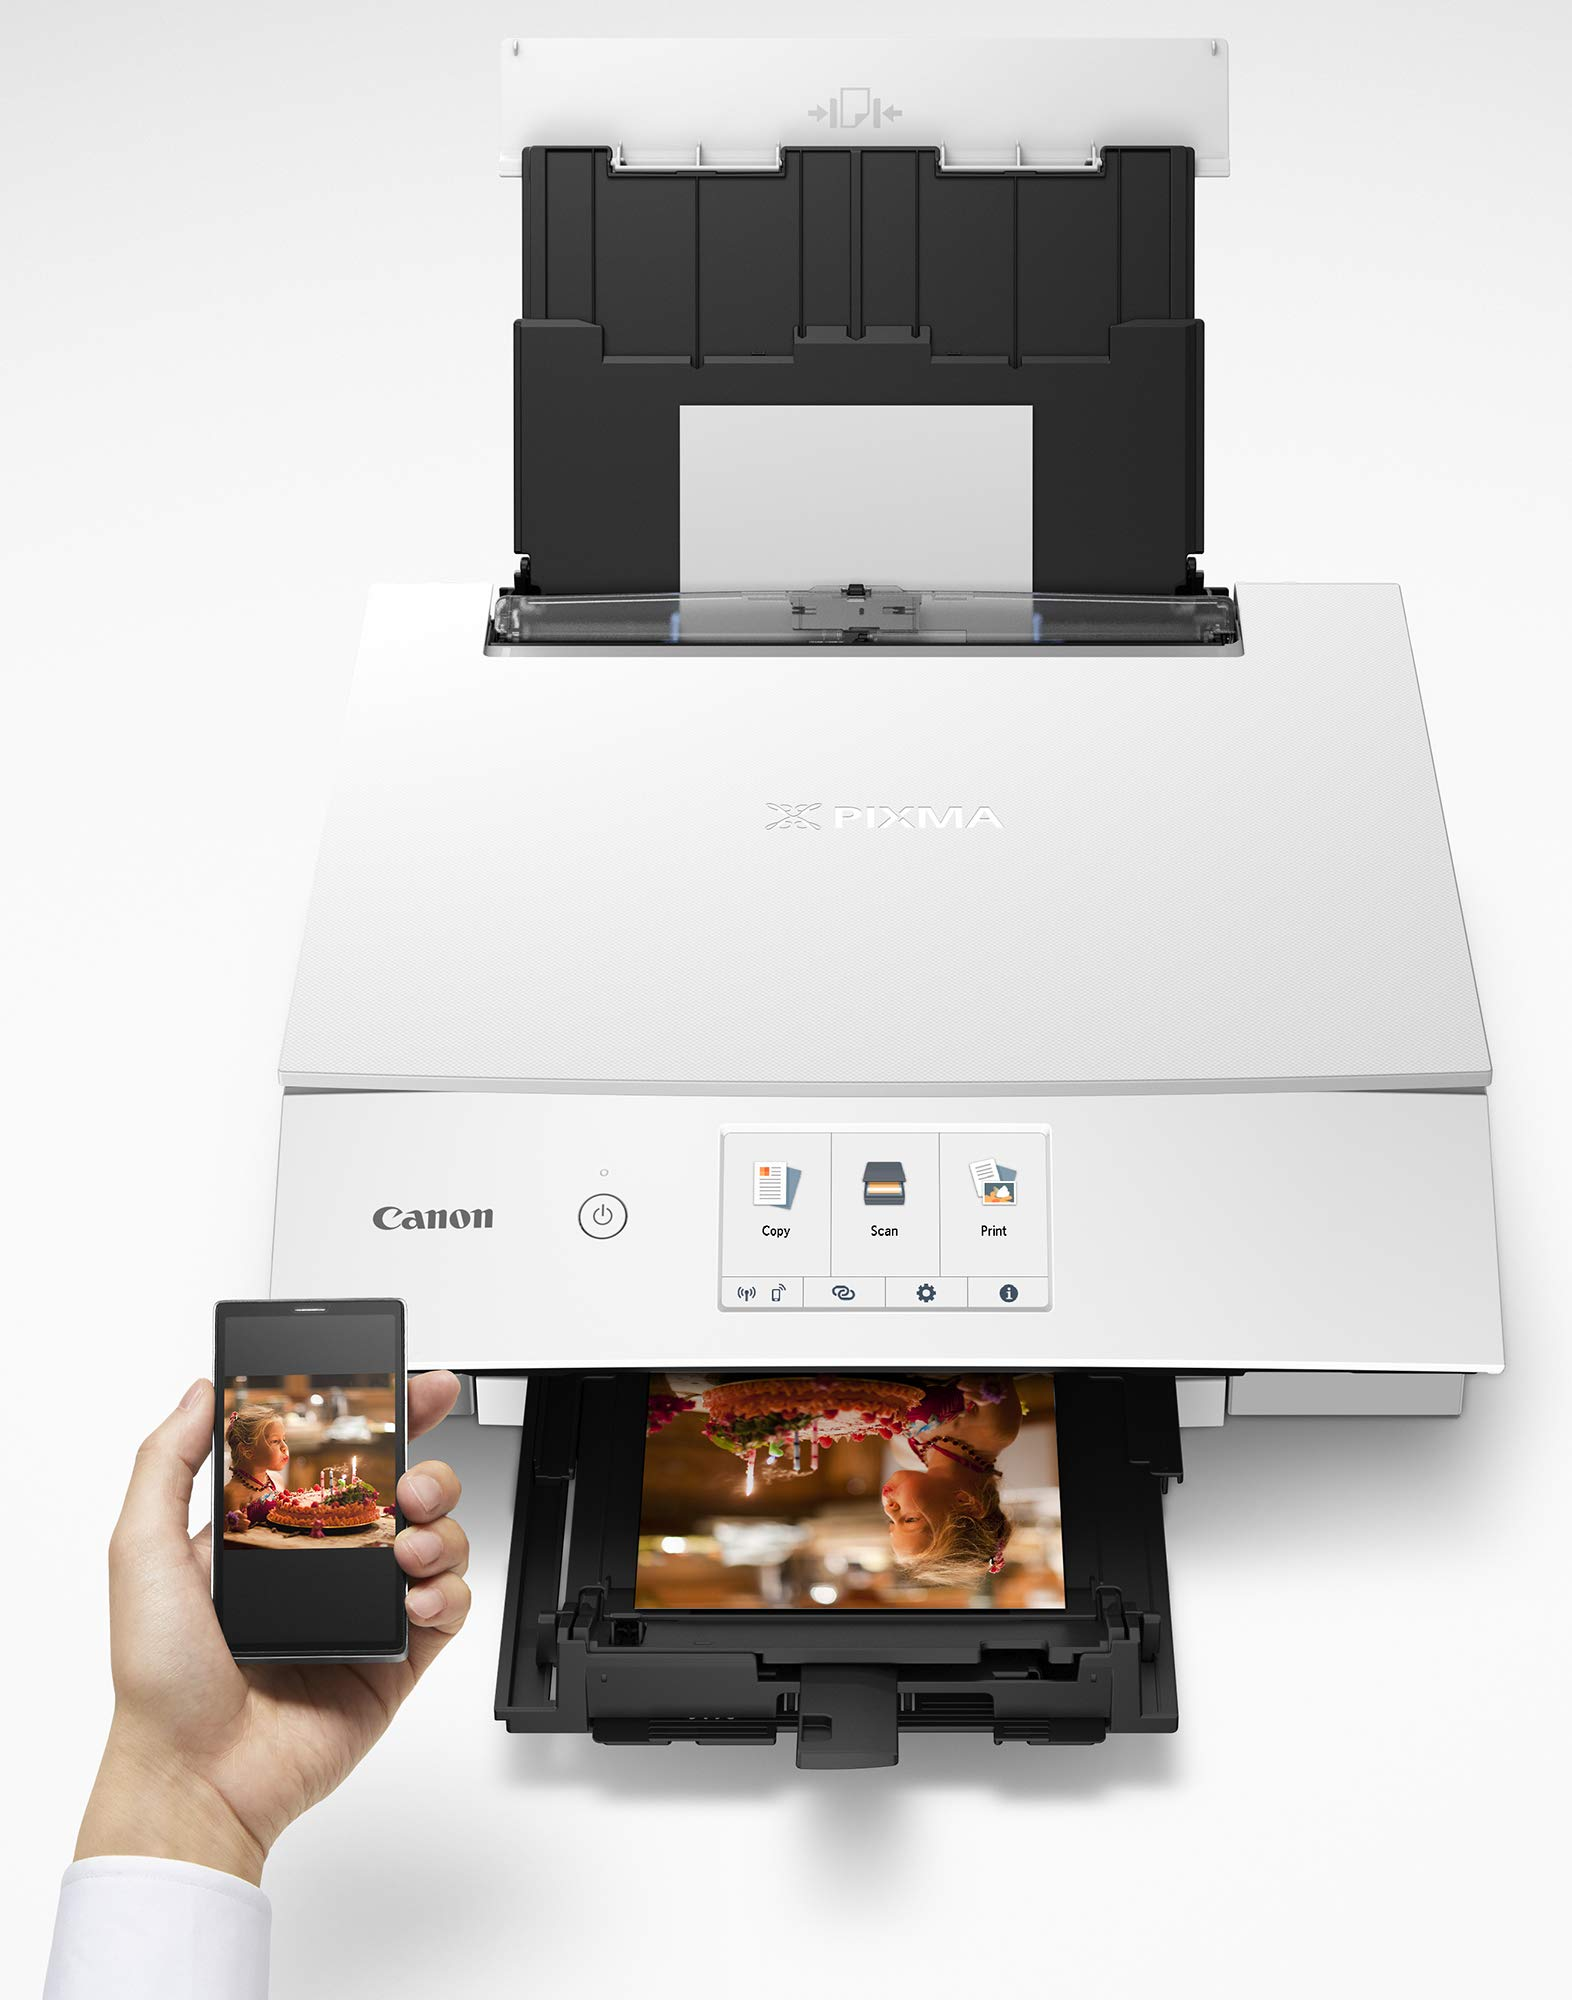 Canon TS8220 Wireless All in One Photo Printer with Scannier and Copier, Mobile Printing, White by Canon (Image #5)